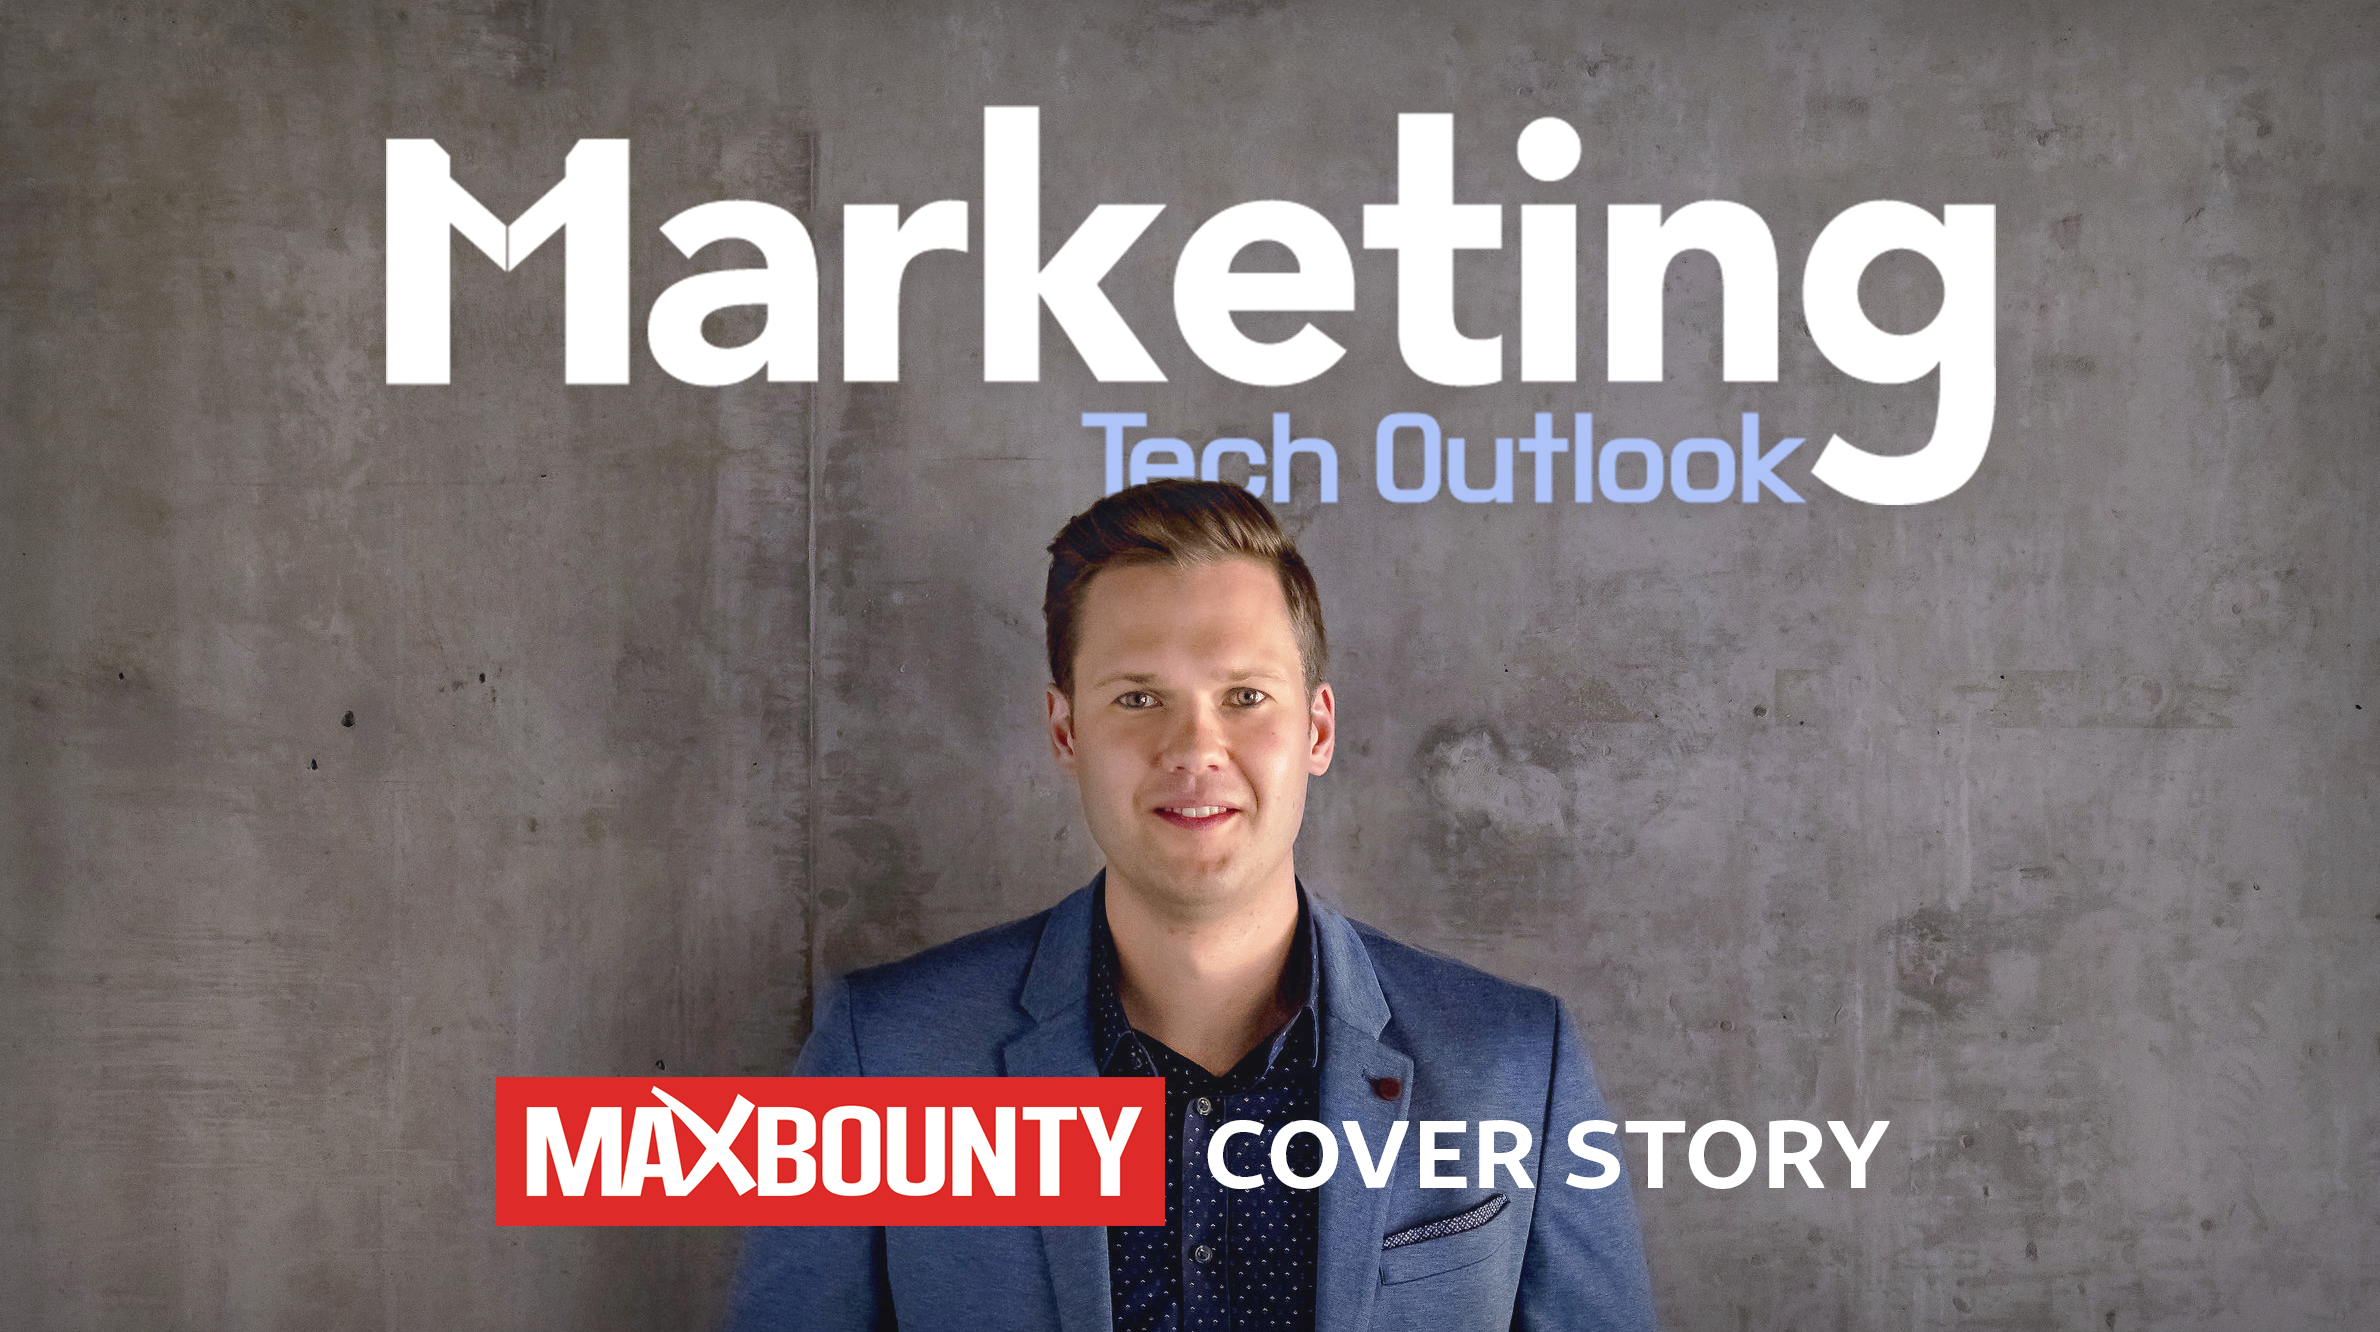 MaxBounty Featured in Marketing Tech Outlook Magazine